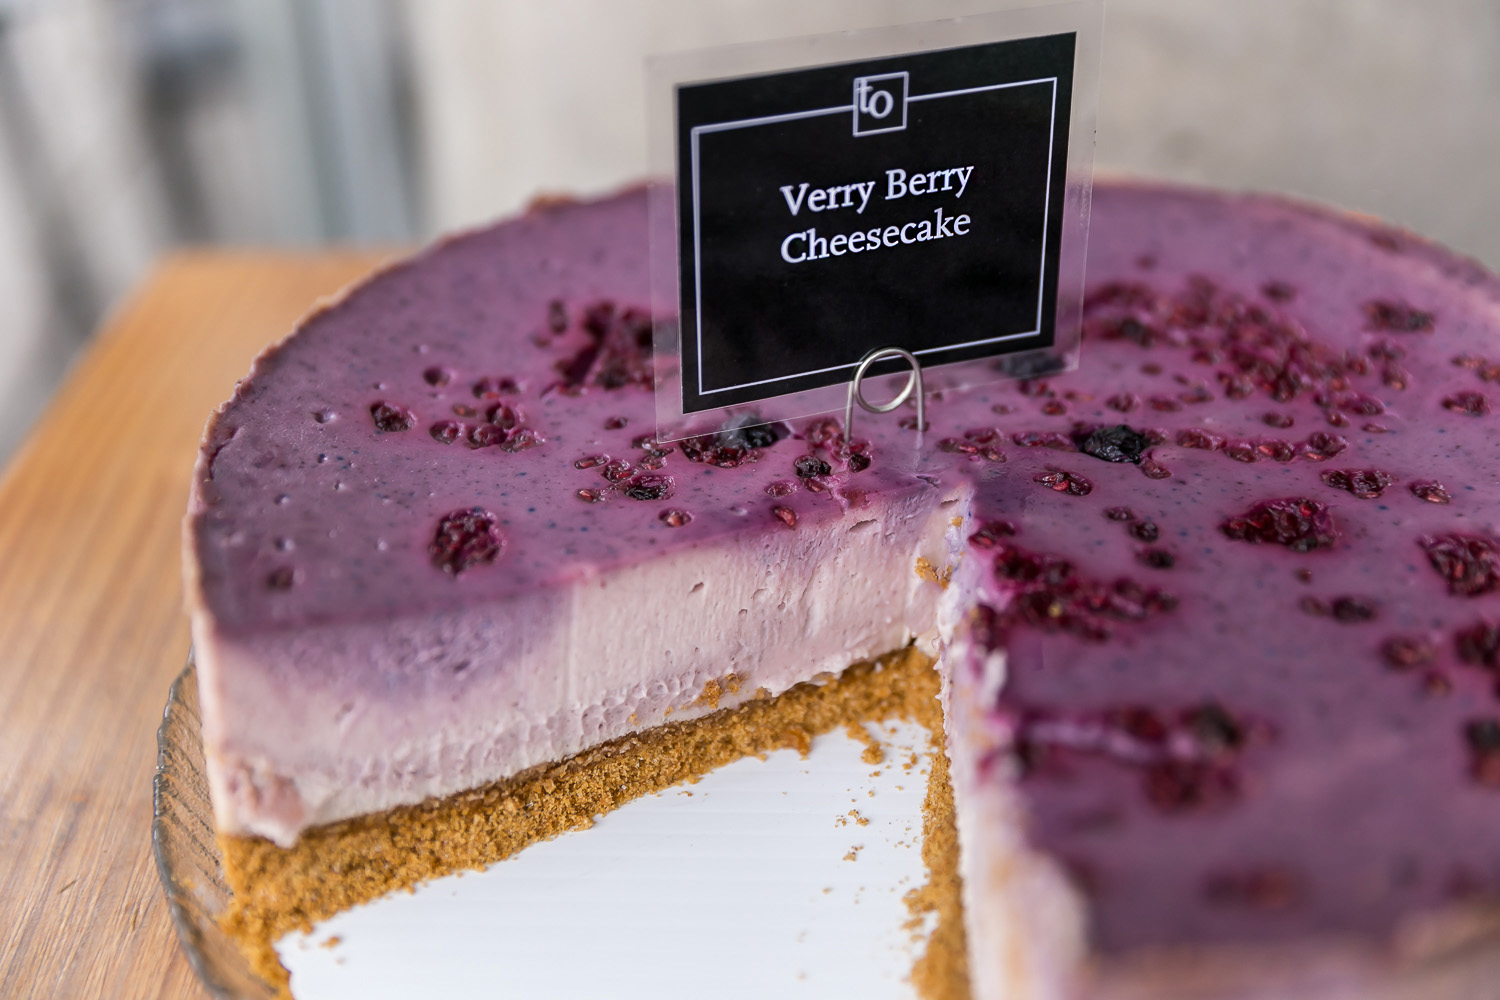 Verry Berry Cheesecake - Trees Organic Coffee